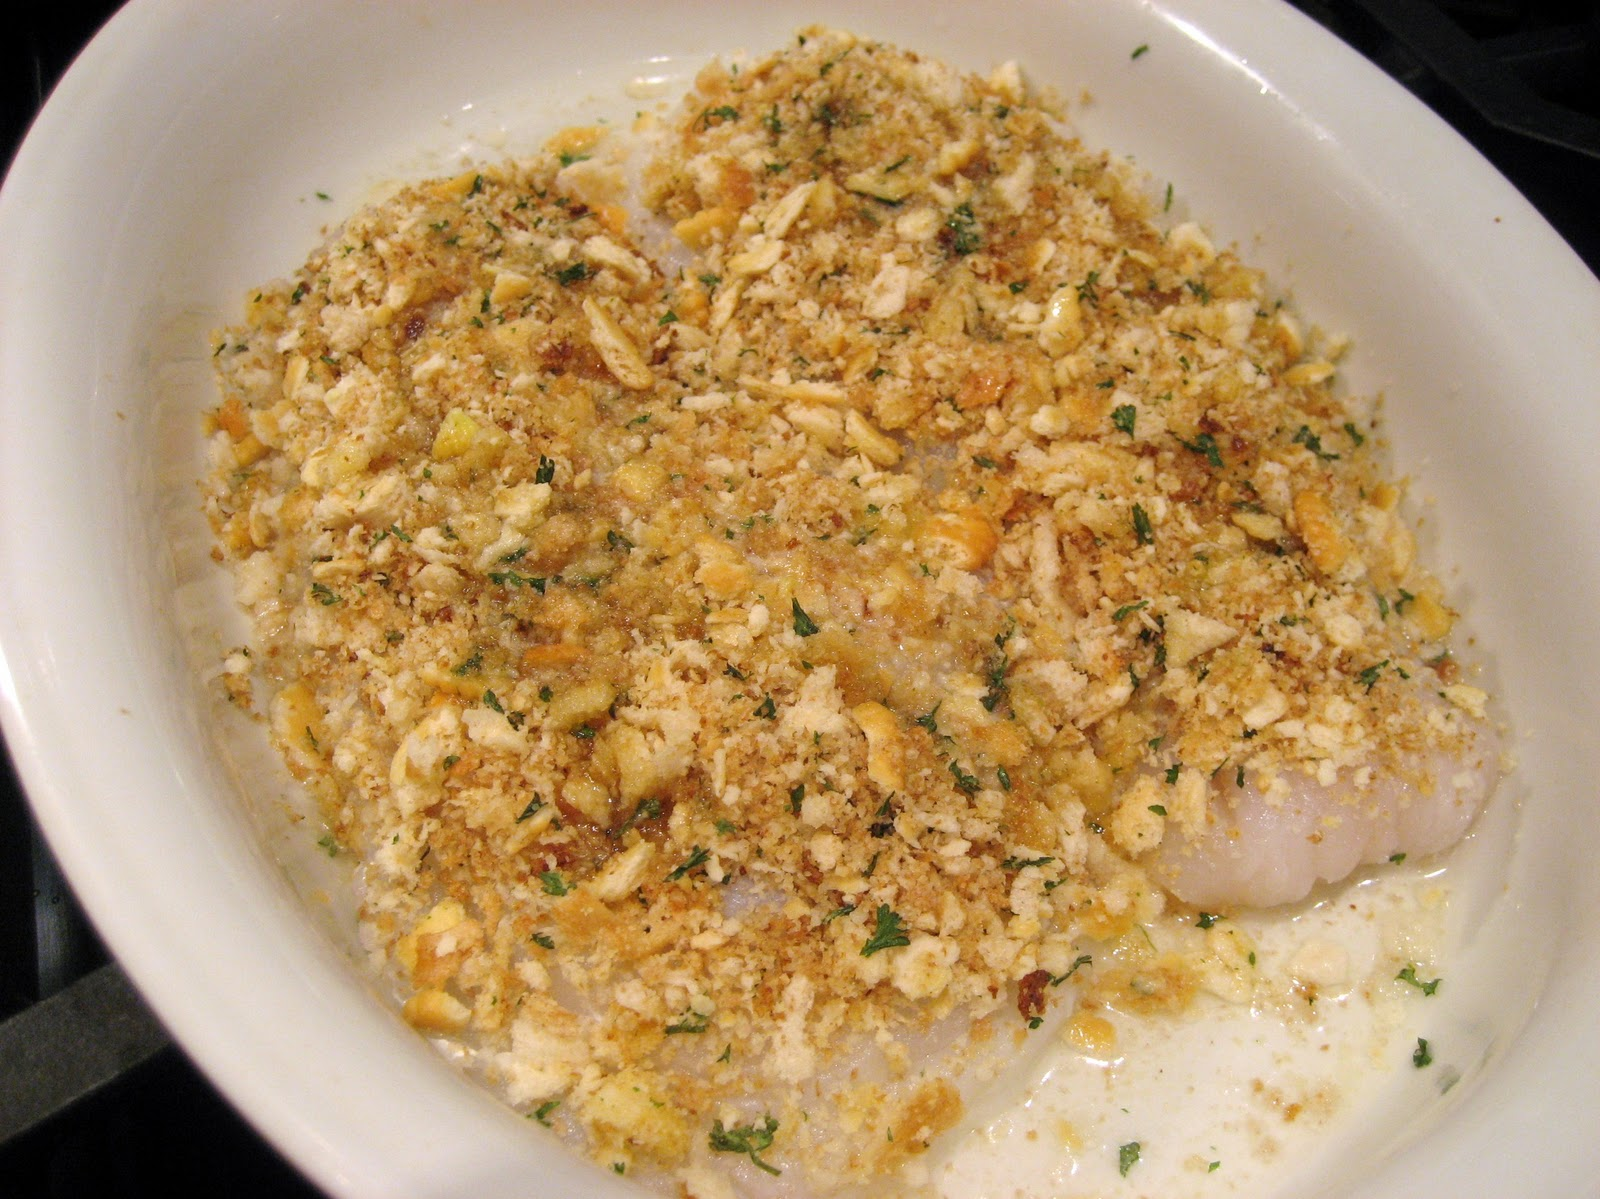 Baked Haddock ready for the oven.